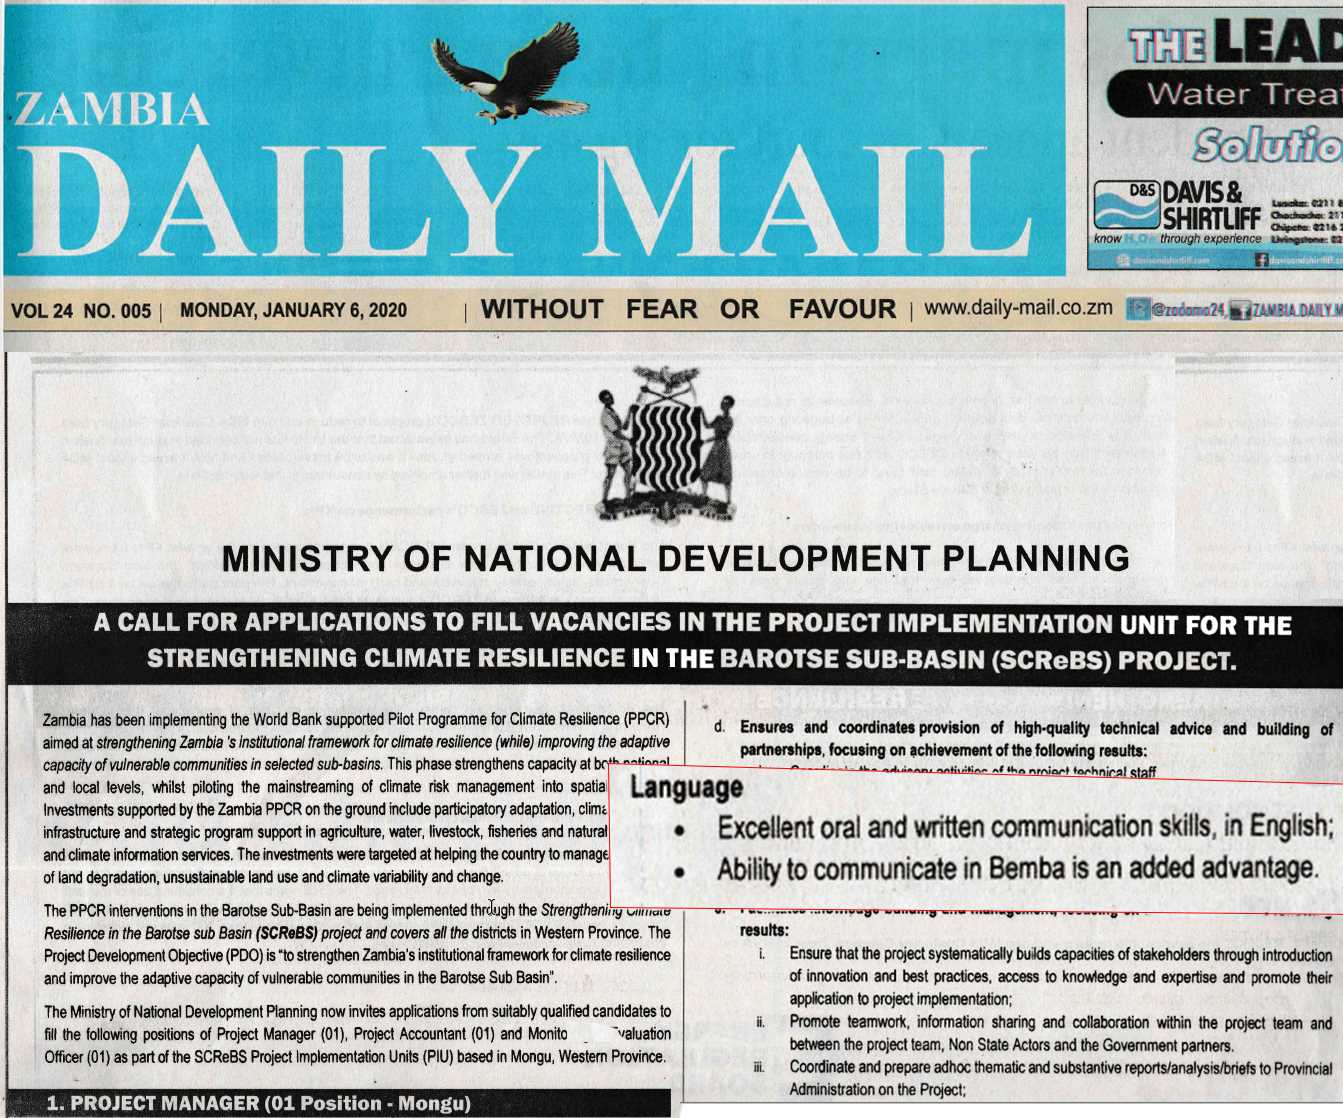 Finance ministry clarifies tribal job advert